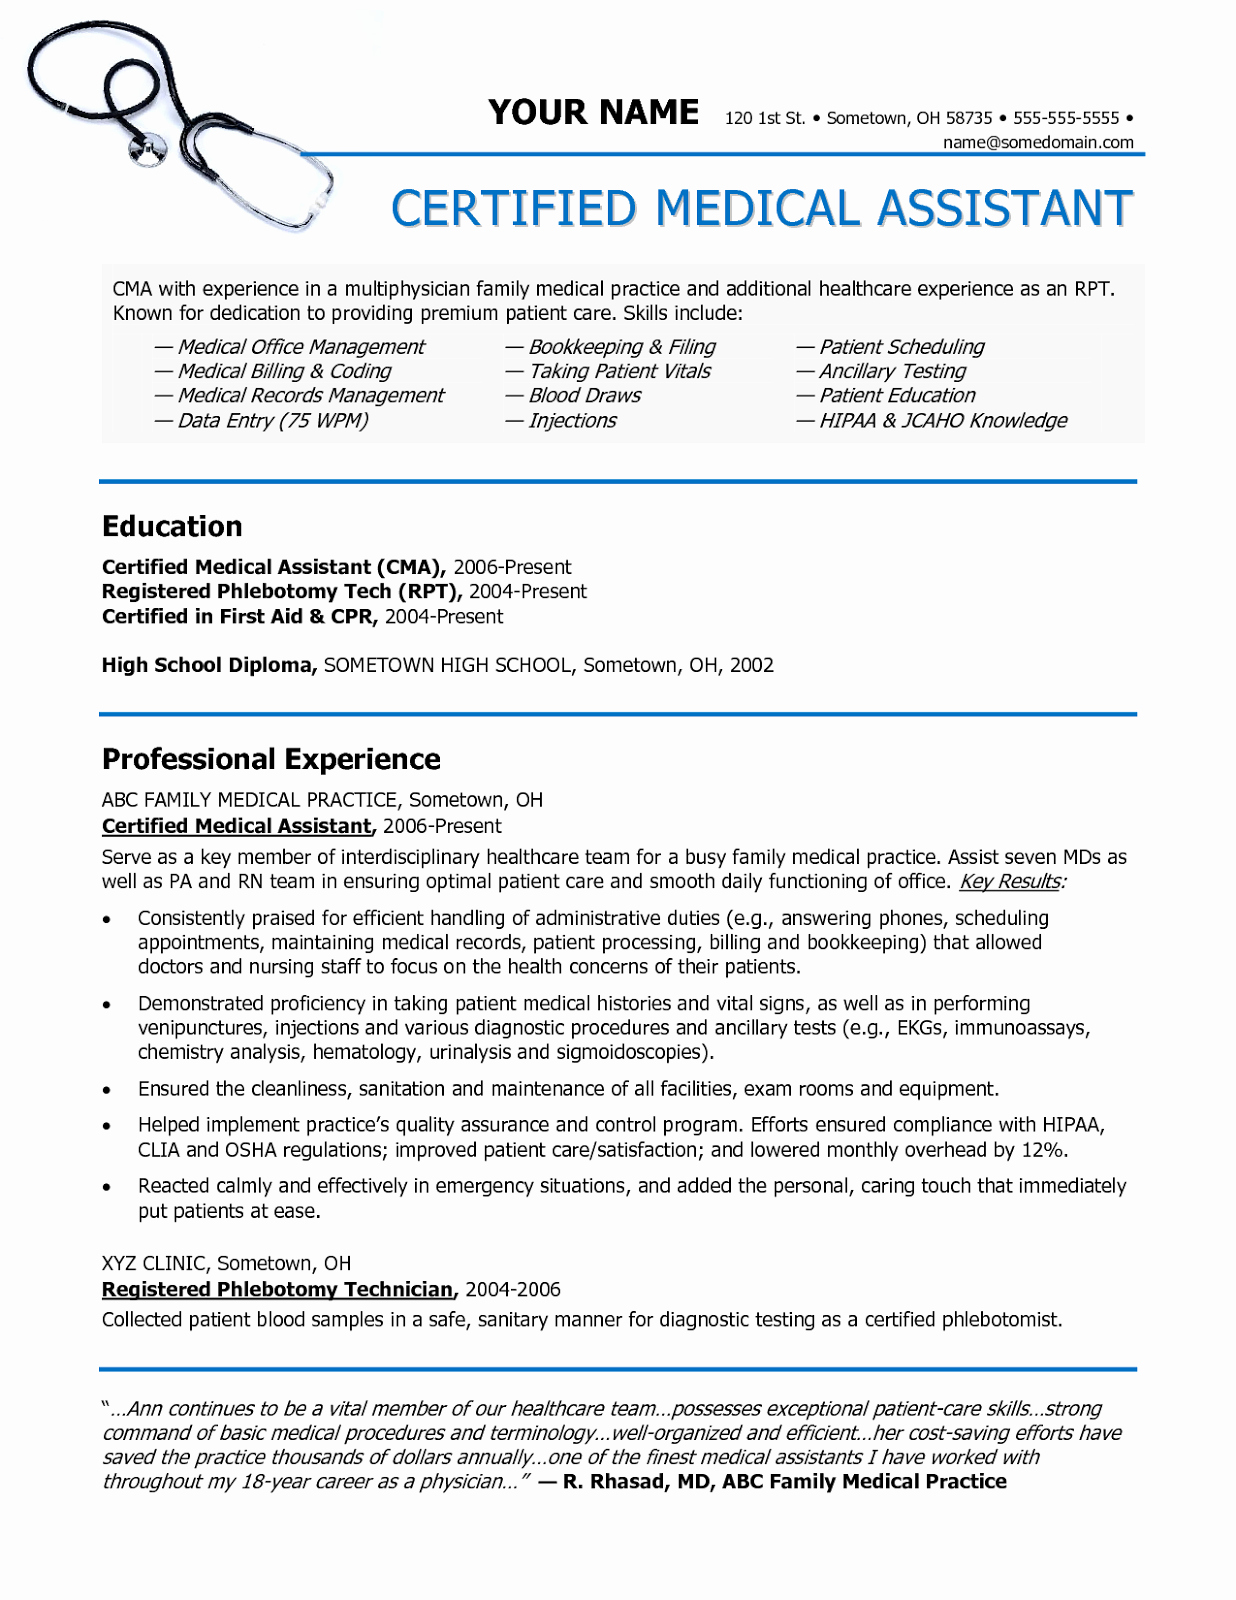 Medical assistant Resume Template Elegant Sample Of A Medical assistant Resume